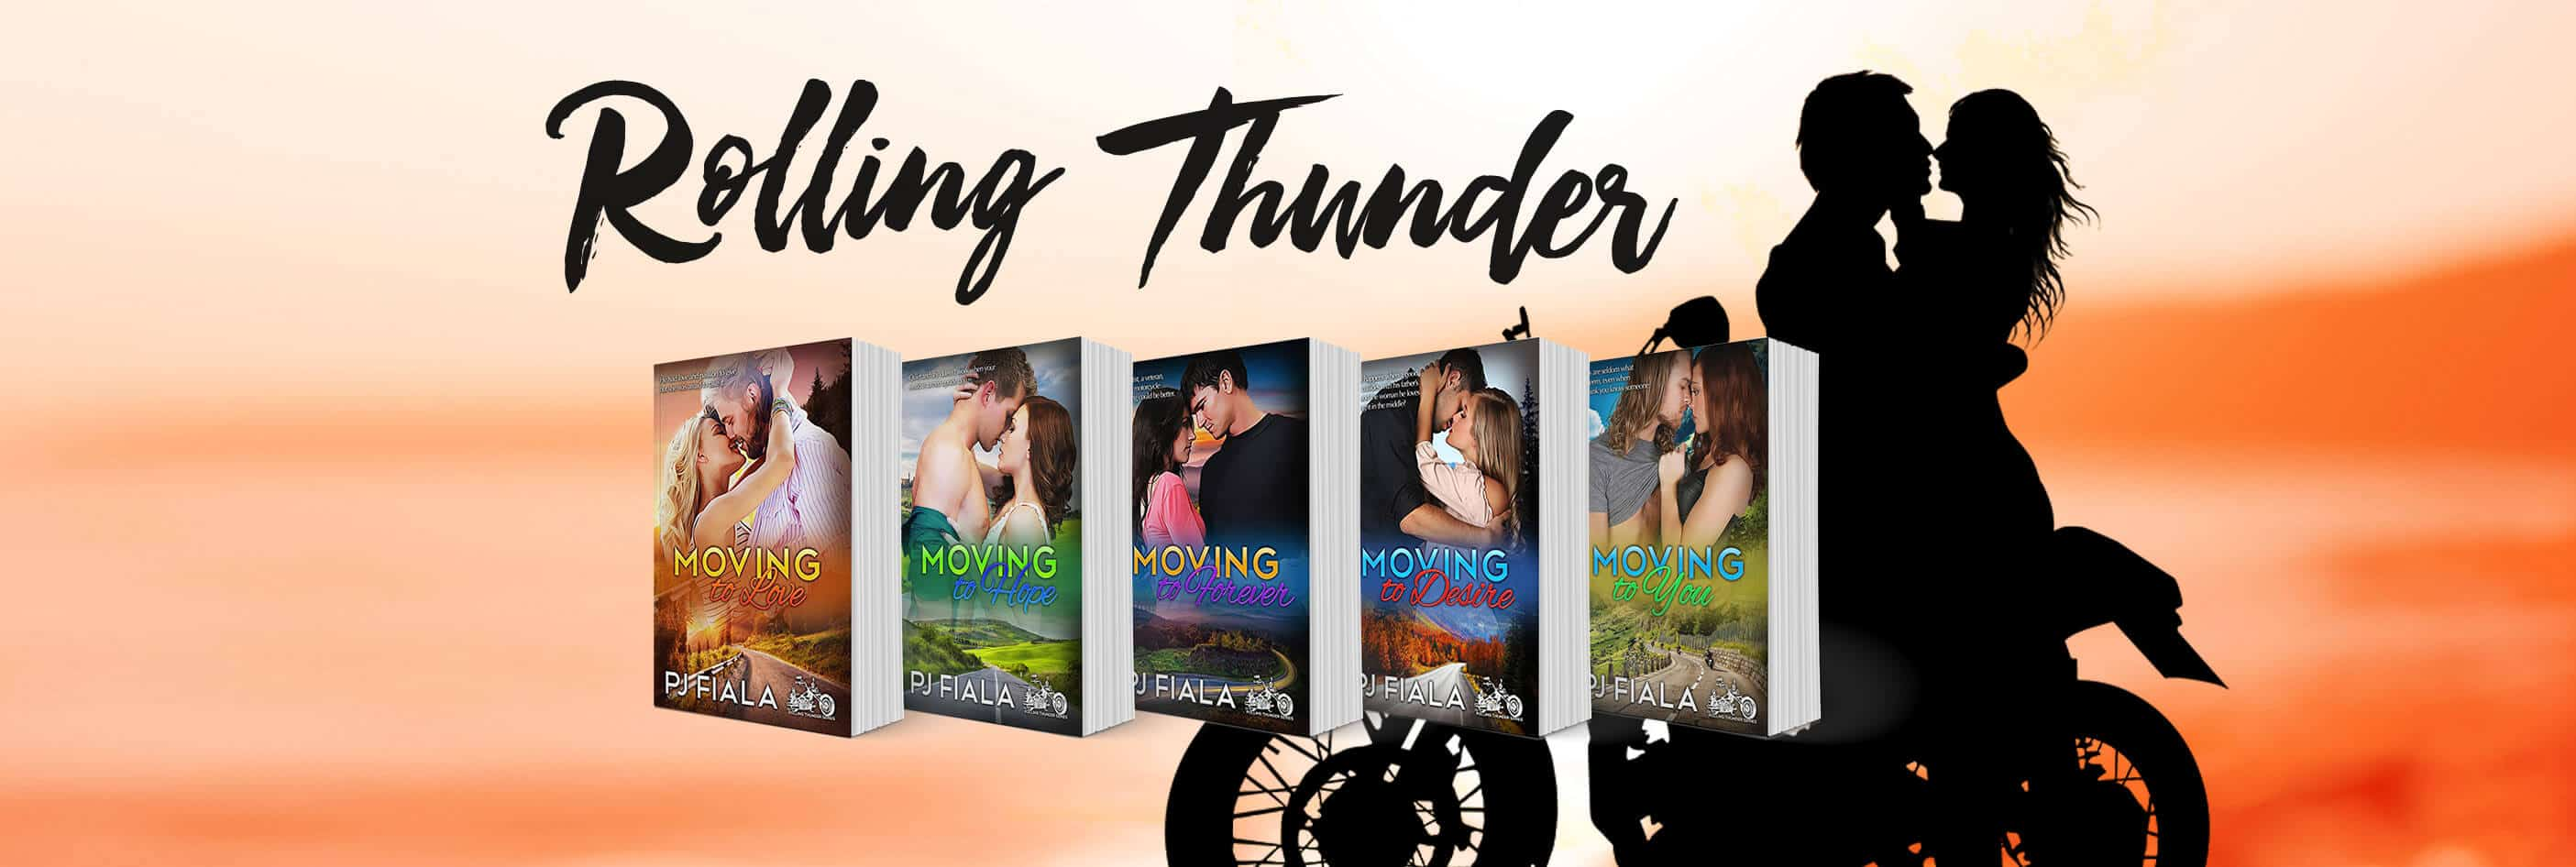 Rolling Thunder - Romance Series from author PJ Fiala